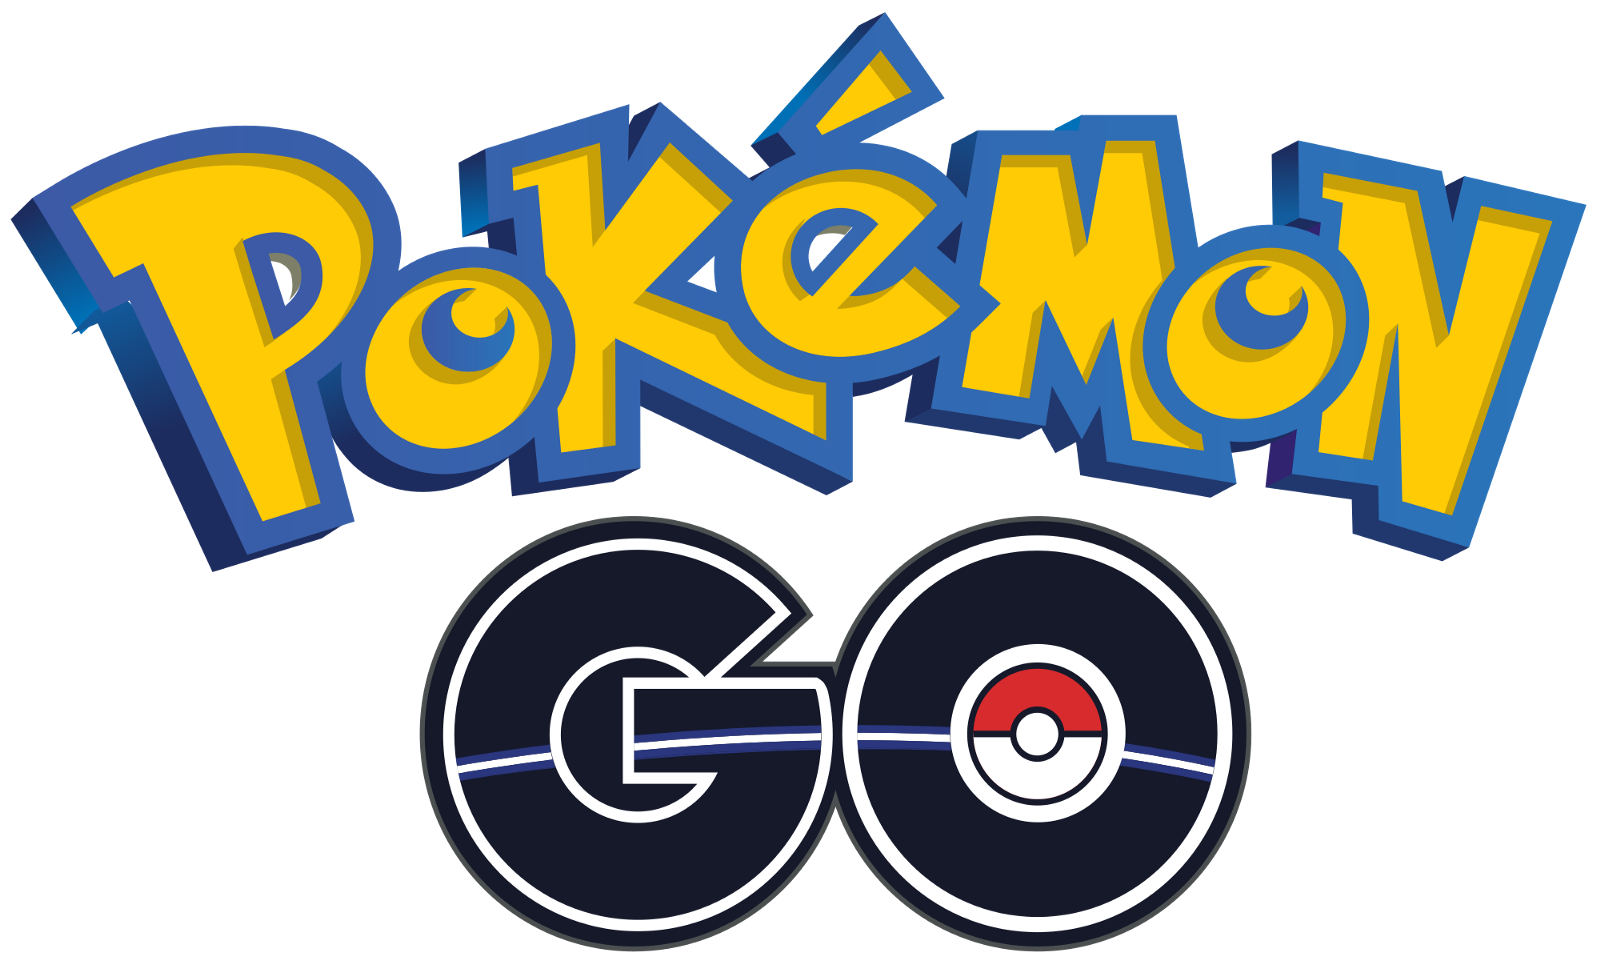 Pokemon go creator niantic wants to build an augmented reality map pokemon go creator niantic wants to build an augmented reality map of the world gumiabroncs Images